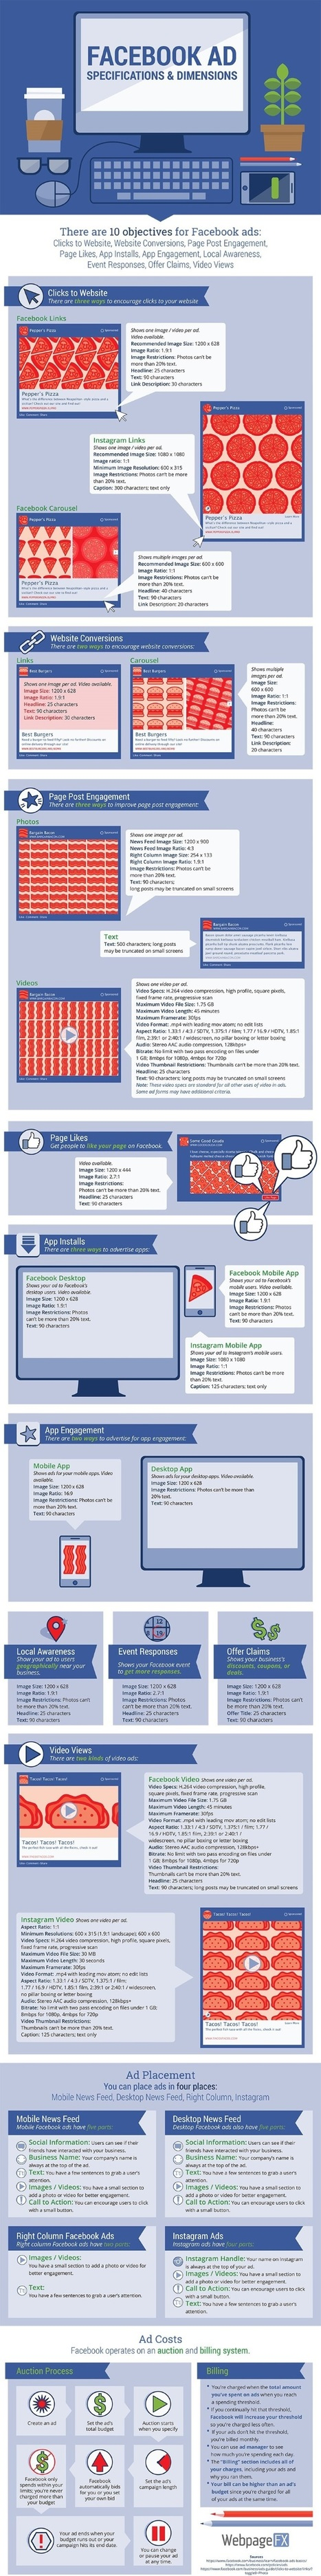 The Anatomy of an Optimized Facebook Ad #Infographic | Great Infographics | Scoop.it